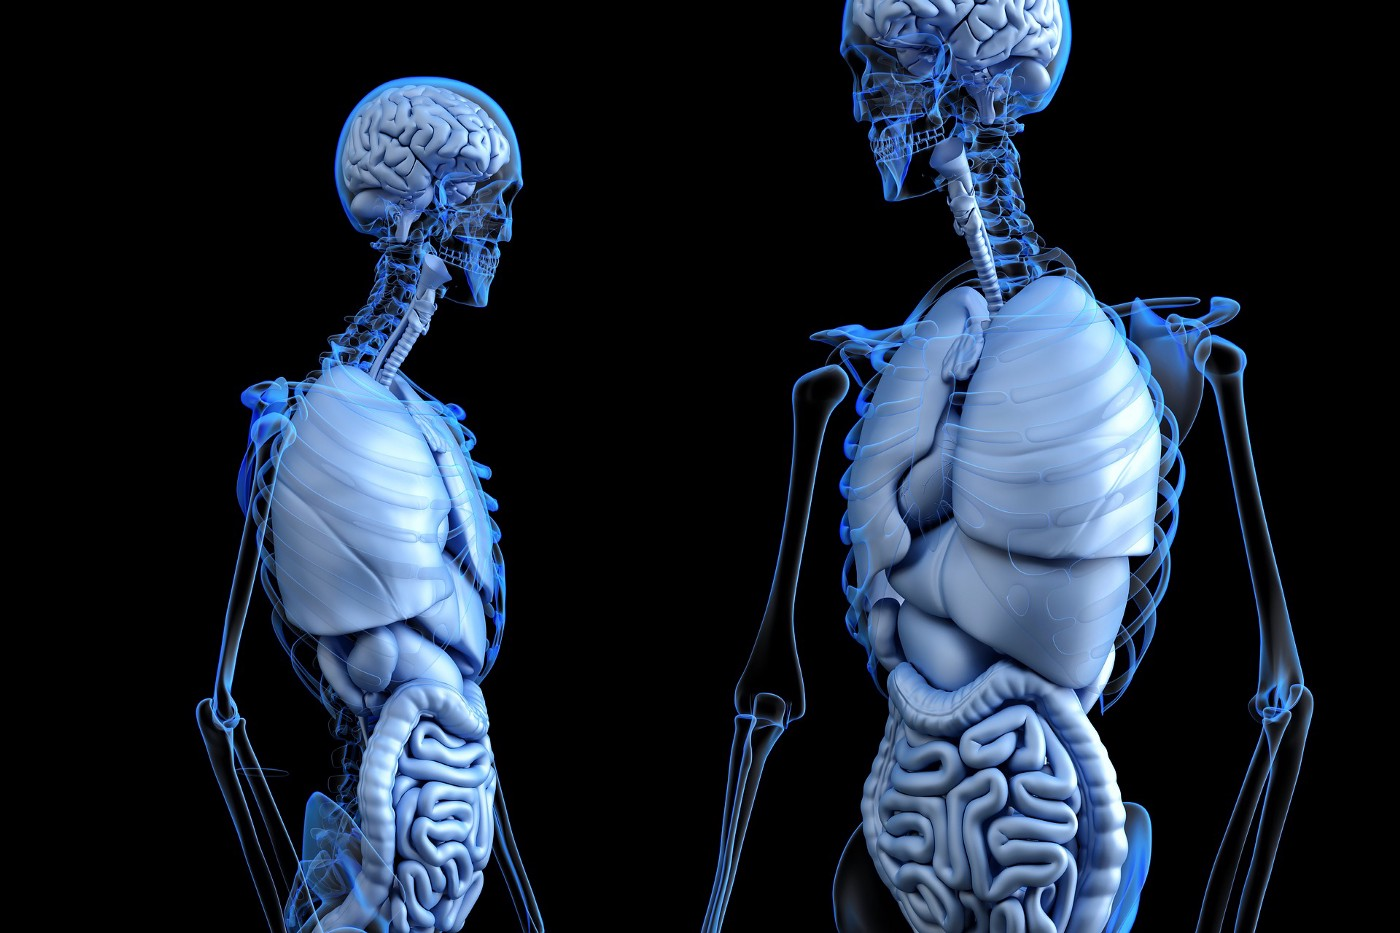 Image by www_slon_pics from Pixabay. Image description: two transparent human bodies showing the organs and skeletal structure from head to the waist.